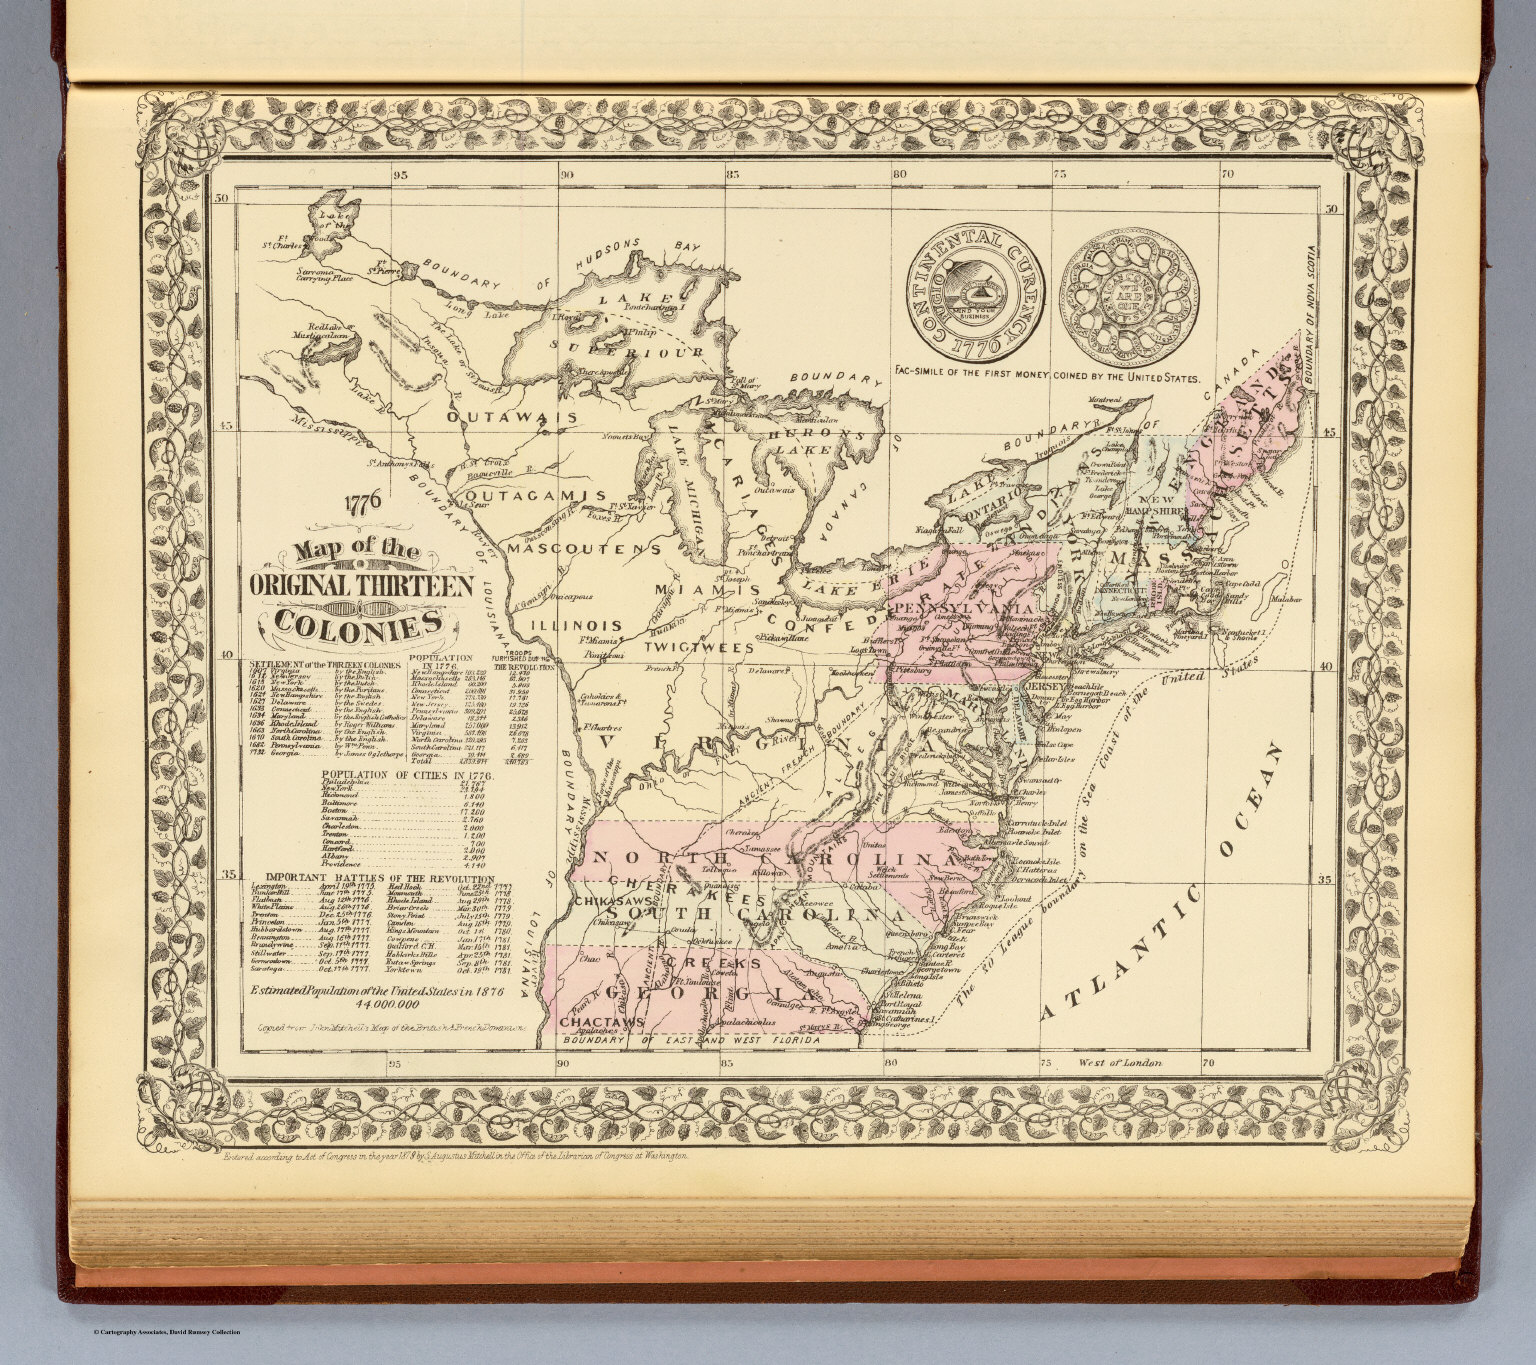 13 colonies 1776  David Rumsey Historical Map Collection